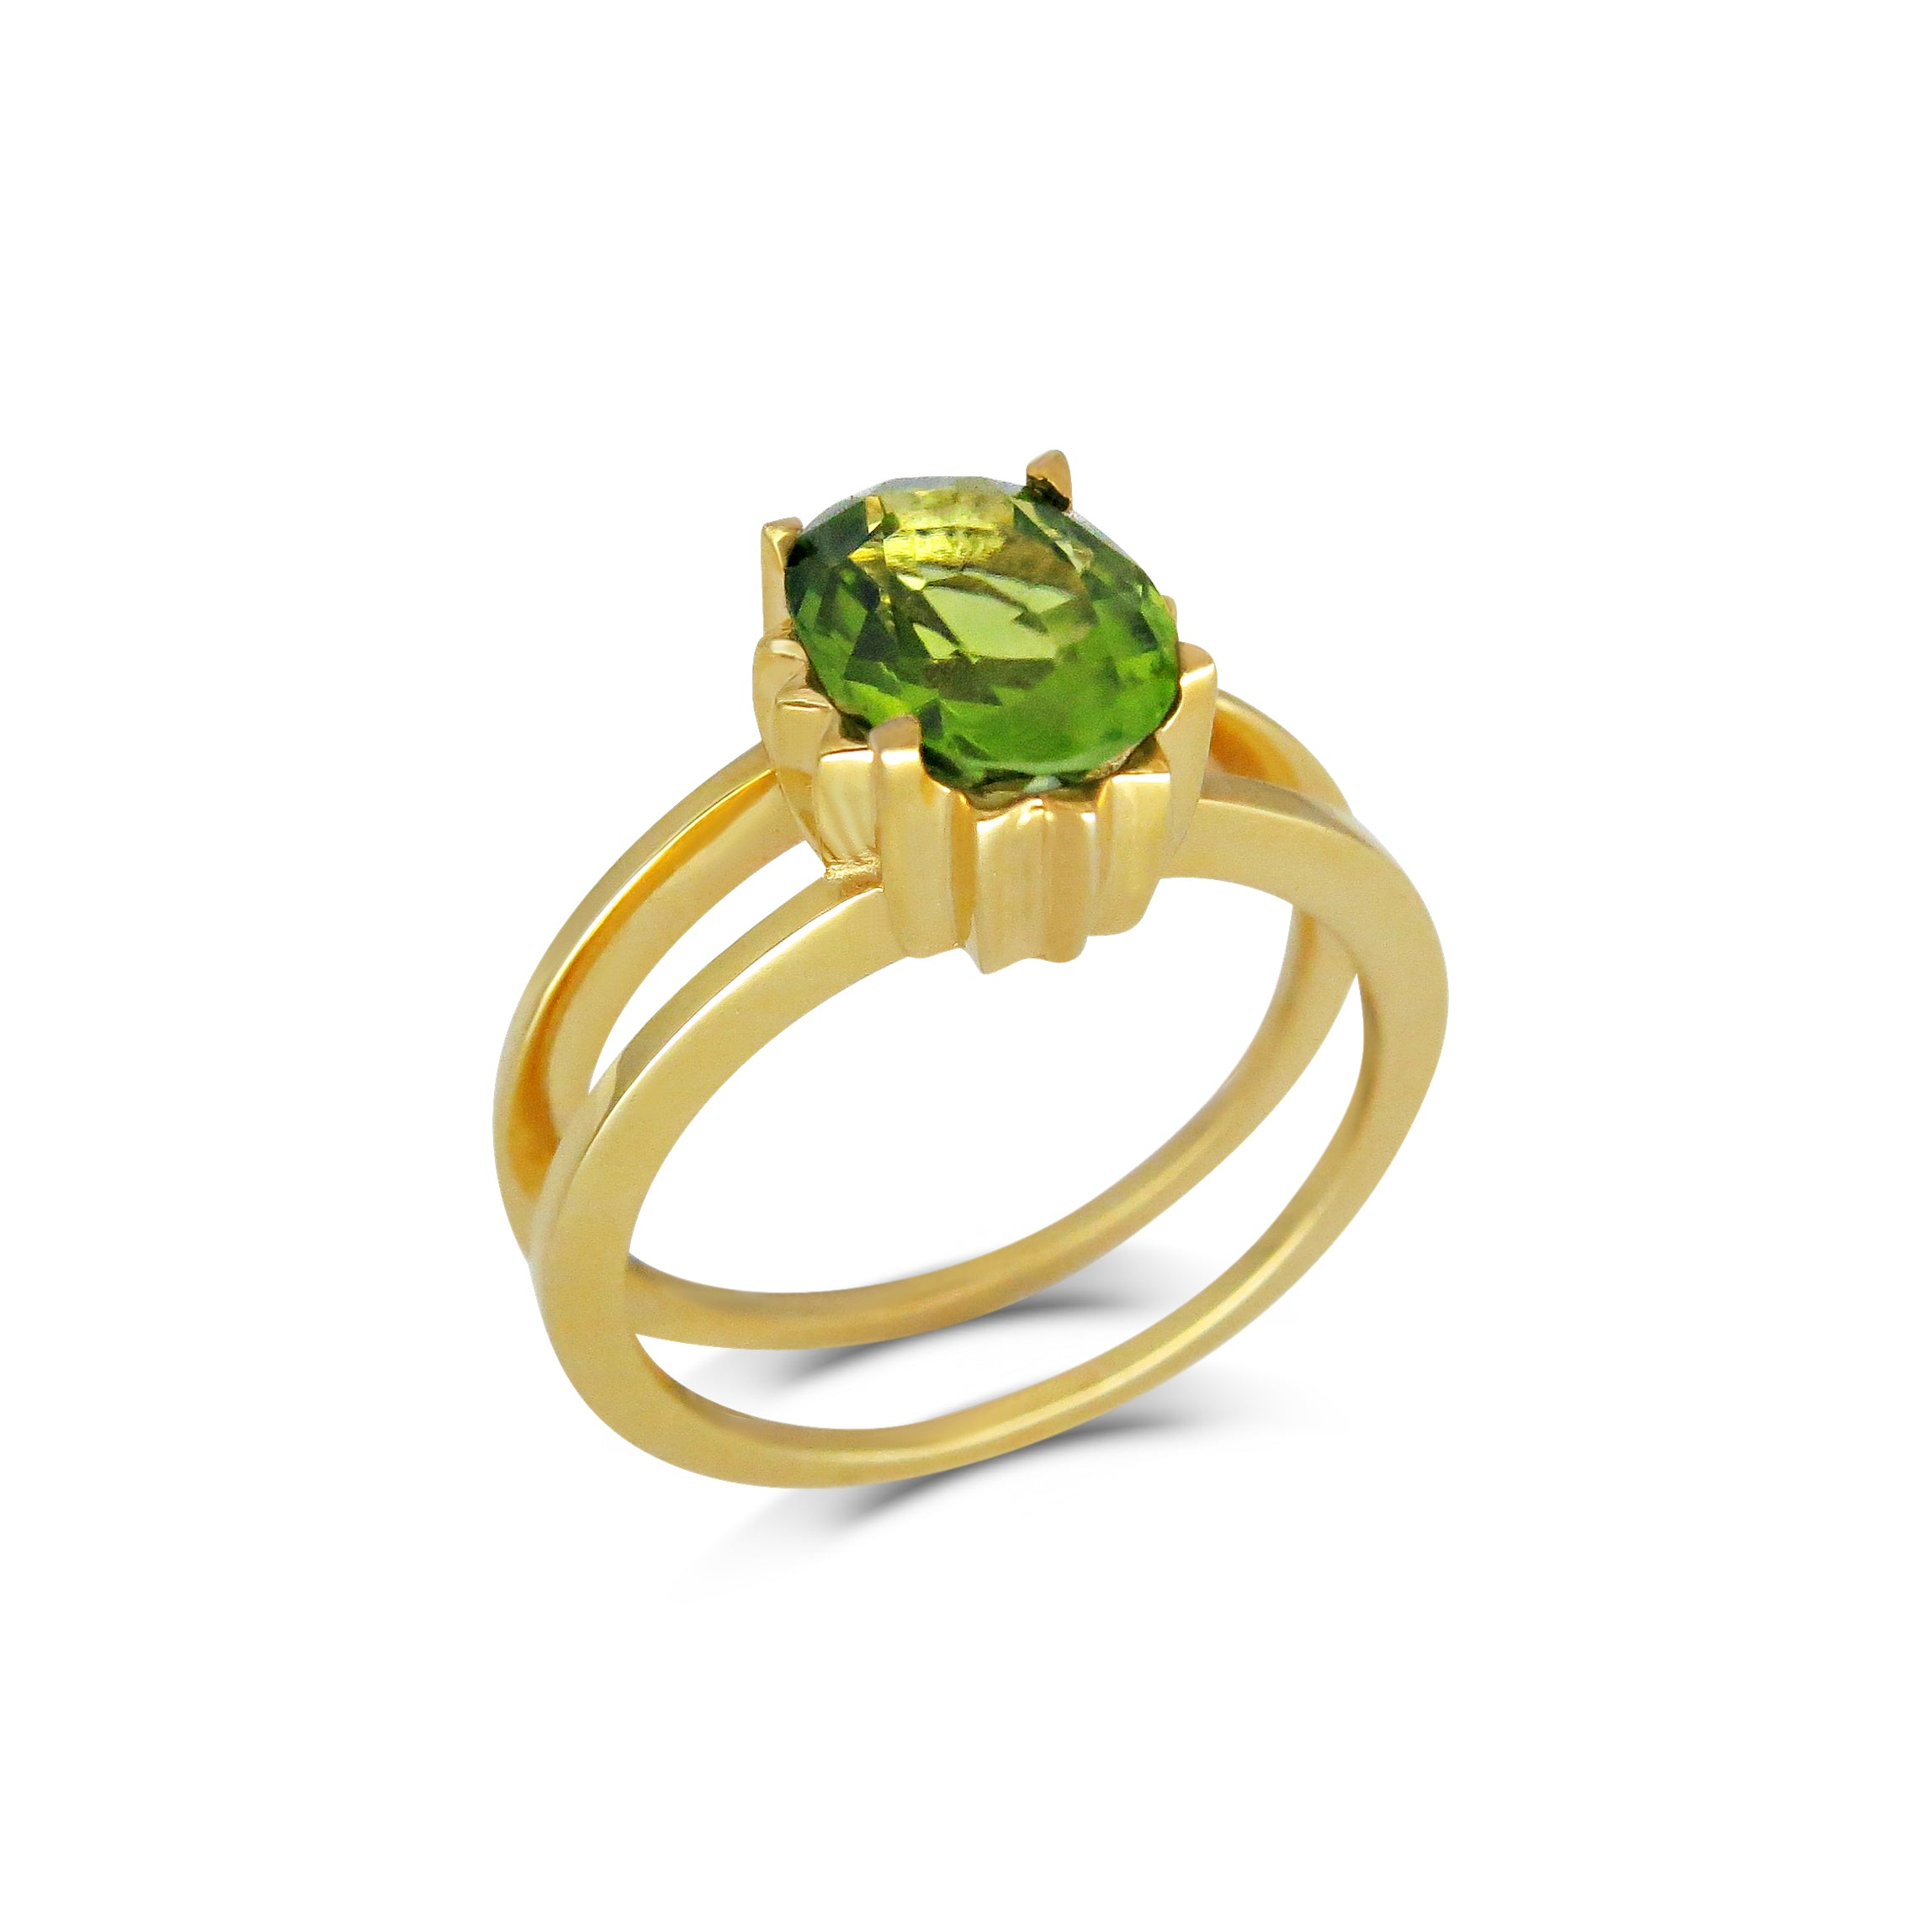 18ct Yellow Gold and Peridot